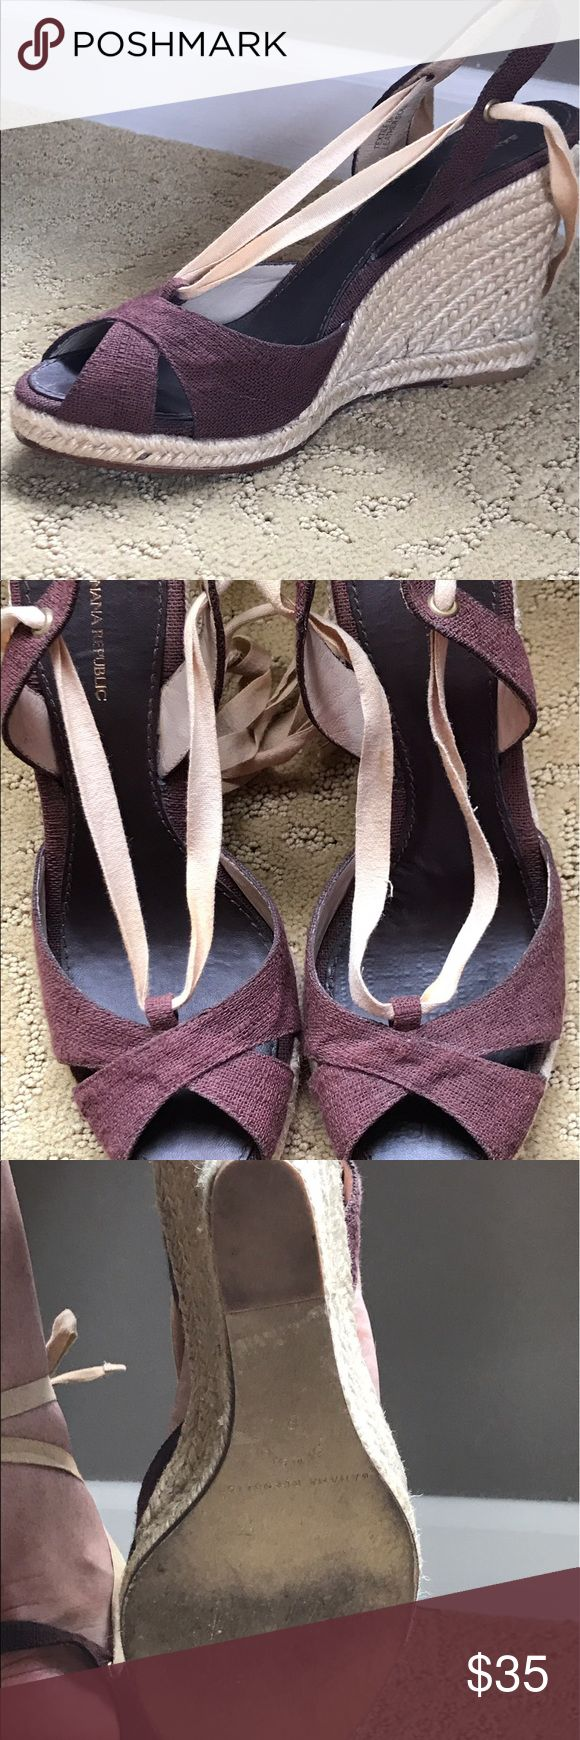 Banana Republic lace up wedges Brown linen like new wedges excellent condition. Banana Republic Shoes Wedges